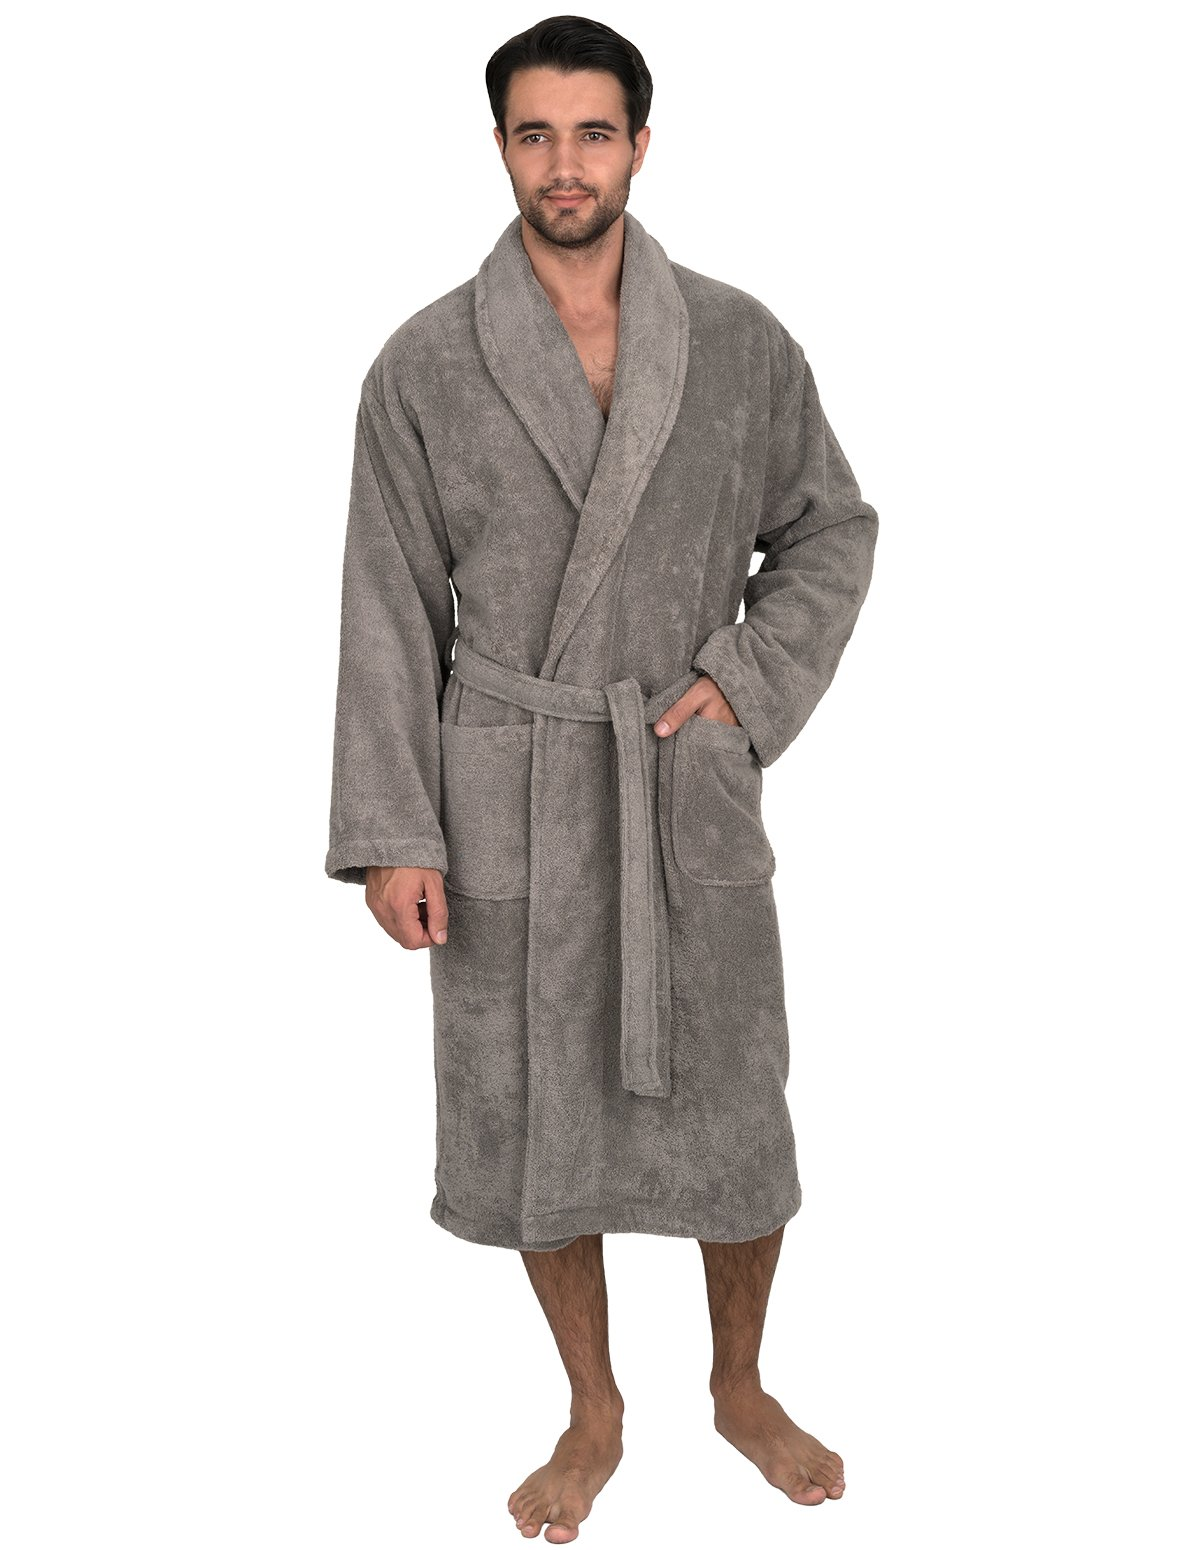 TowelSelections Men's Robe, Organic Cotton Terry Shawl Bathrobe Large/X-Large Neutral Gray